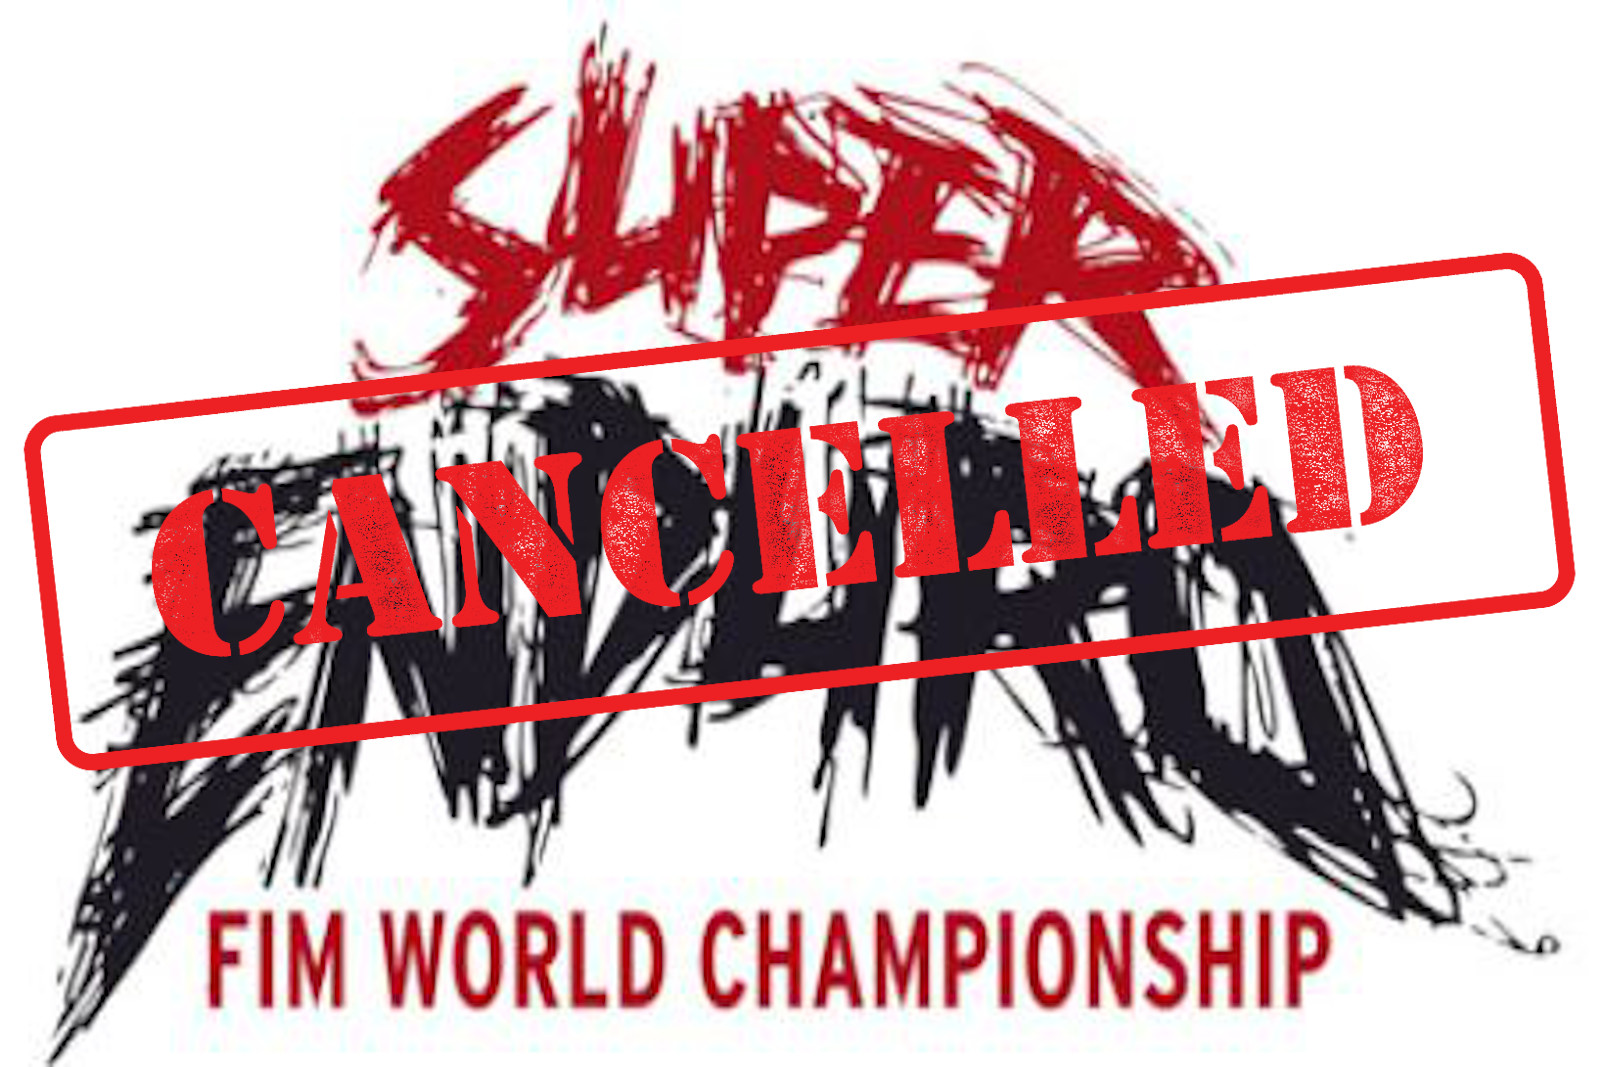 2020 SuperEnduro final in Poland cancelled this weekend